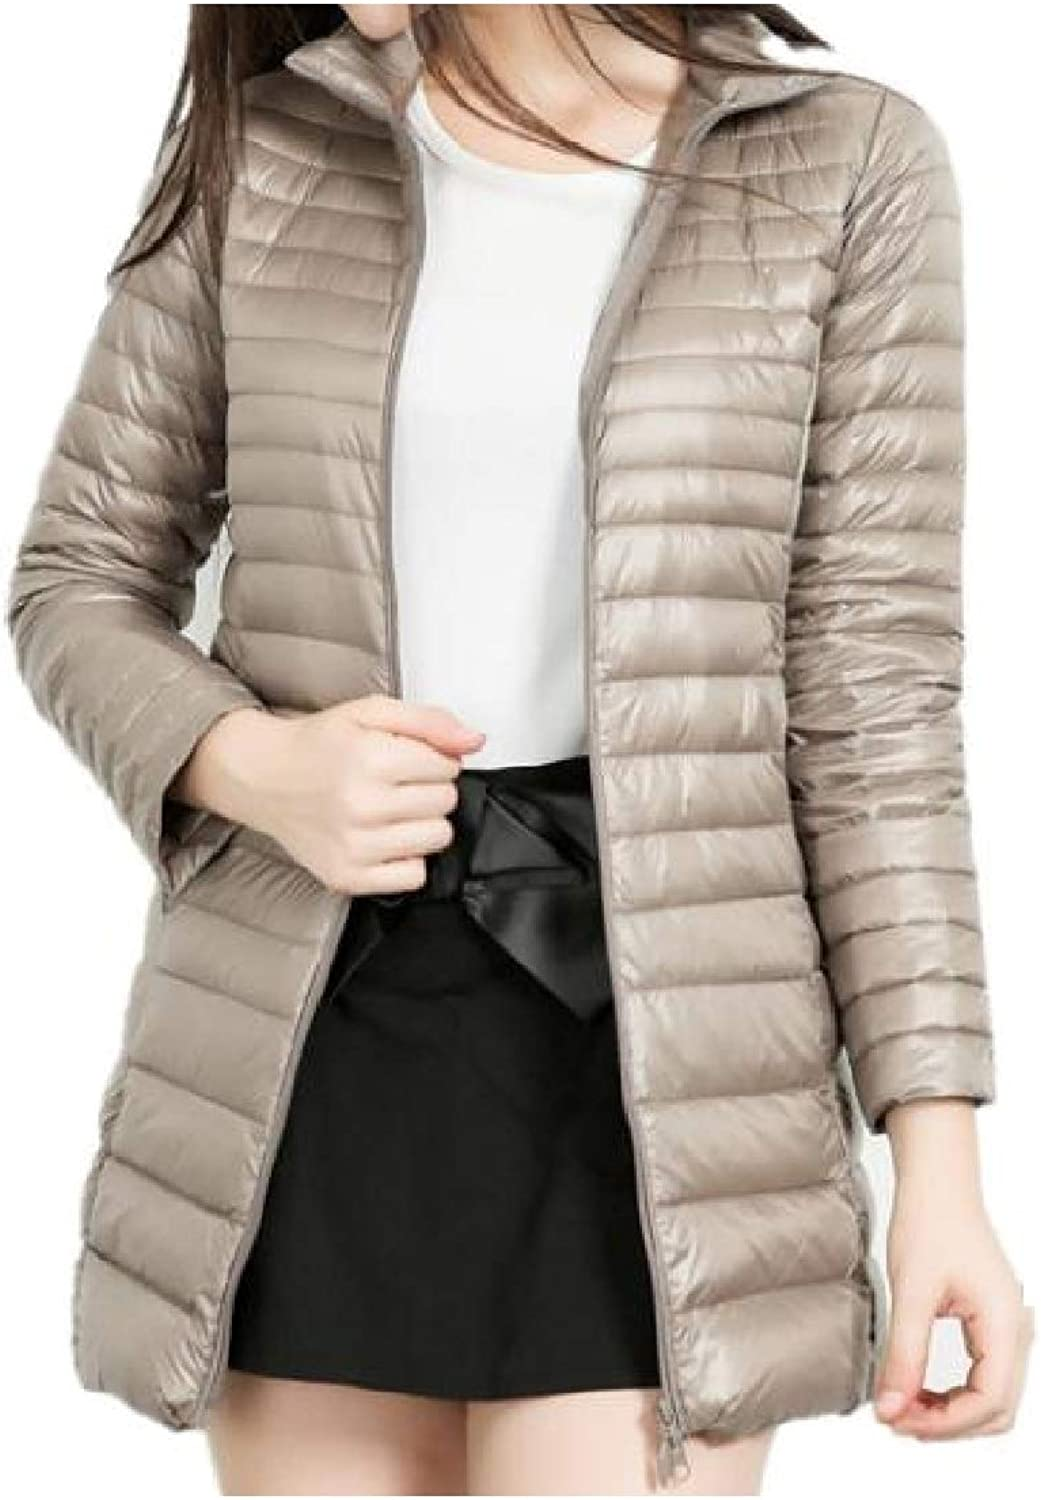 color&W Women's Pure MidLong Winter Ultra Light Weight Skinny Down Coat Outerwear